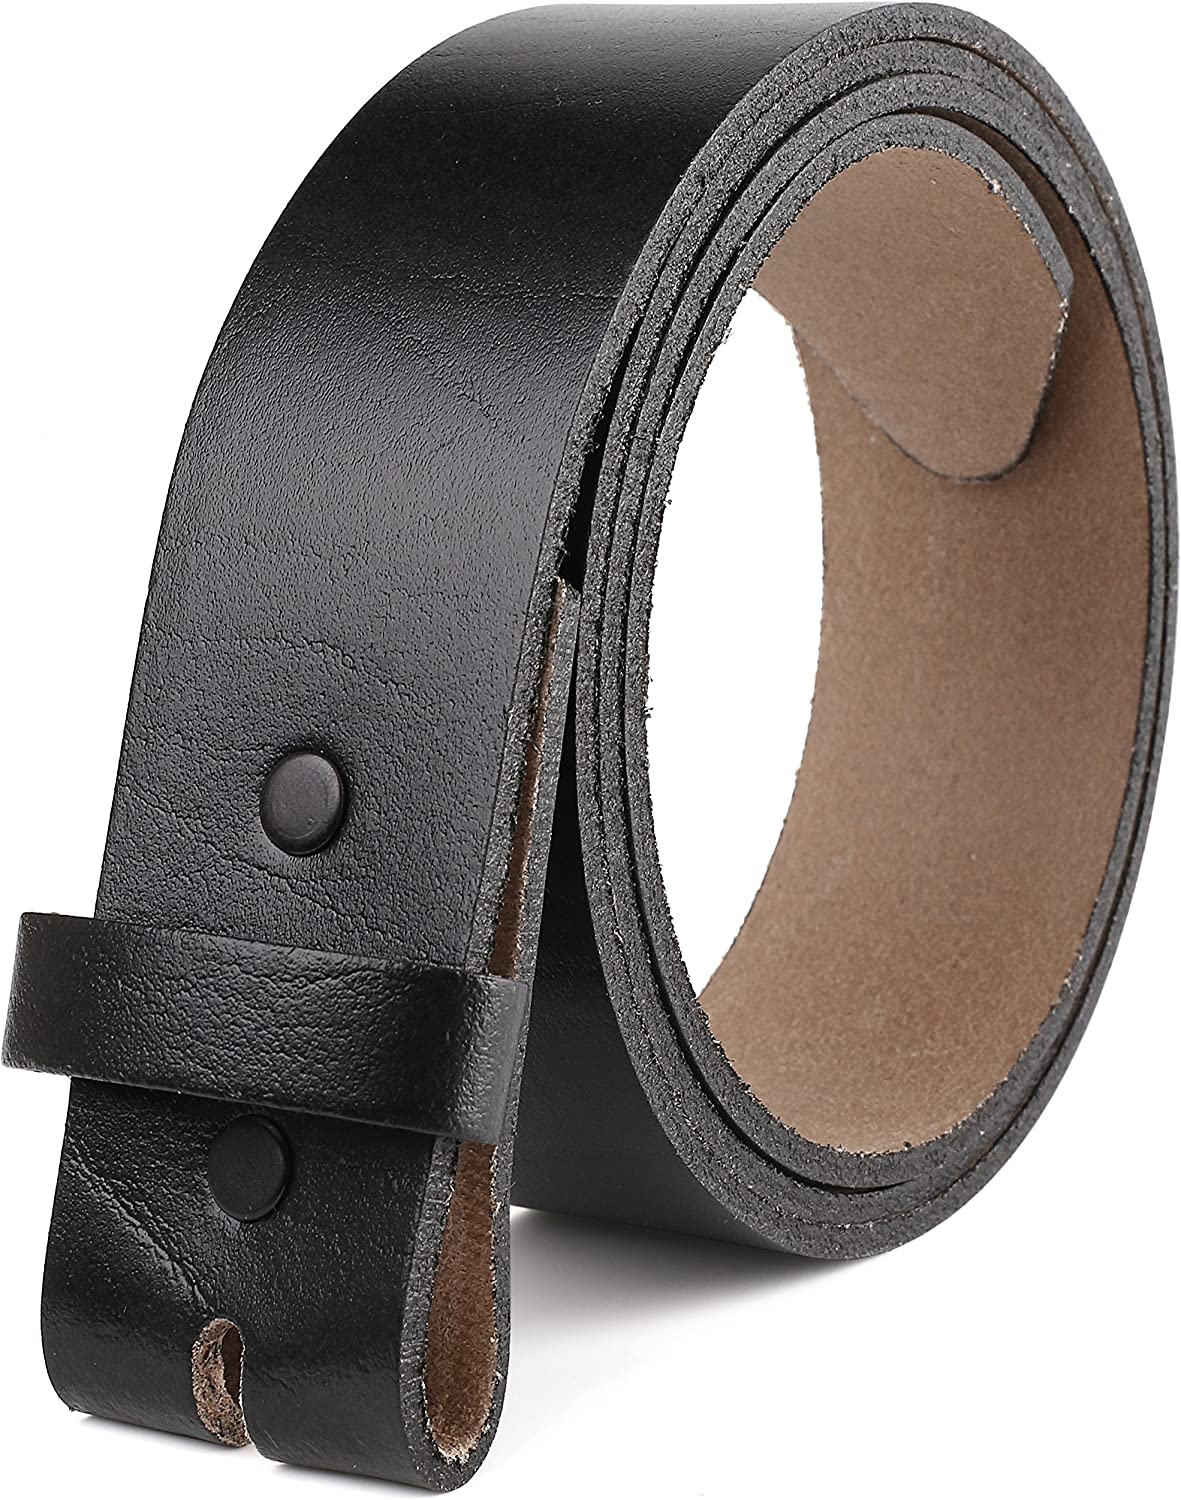 Belt for buckle men Snap on Strap Full Grain One Piece Leather no buckle,1 1/2